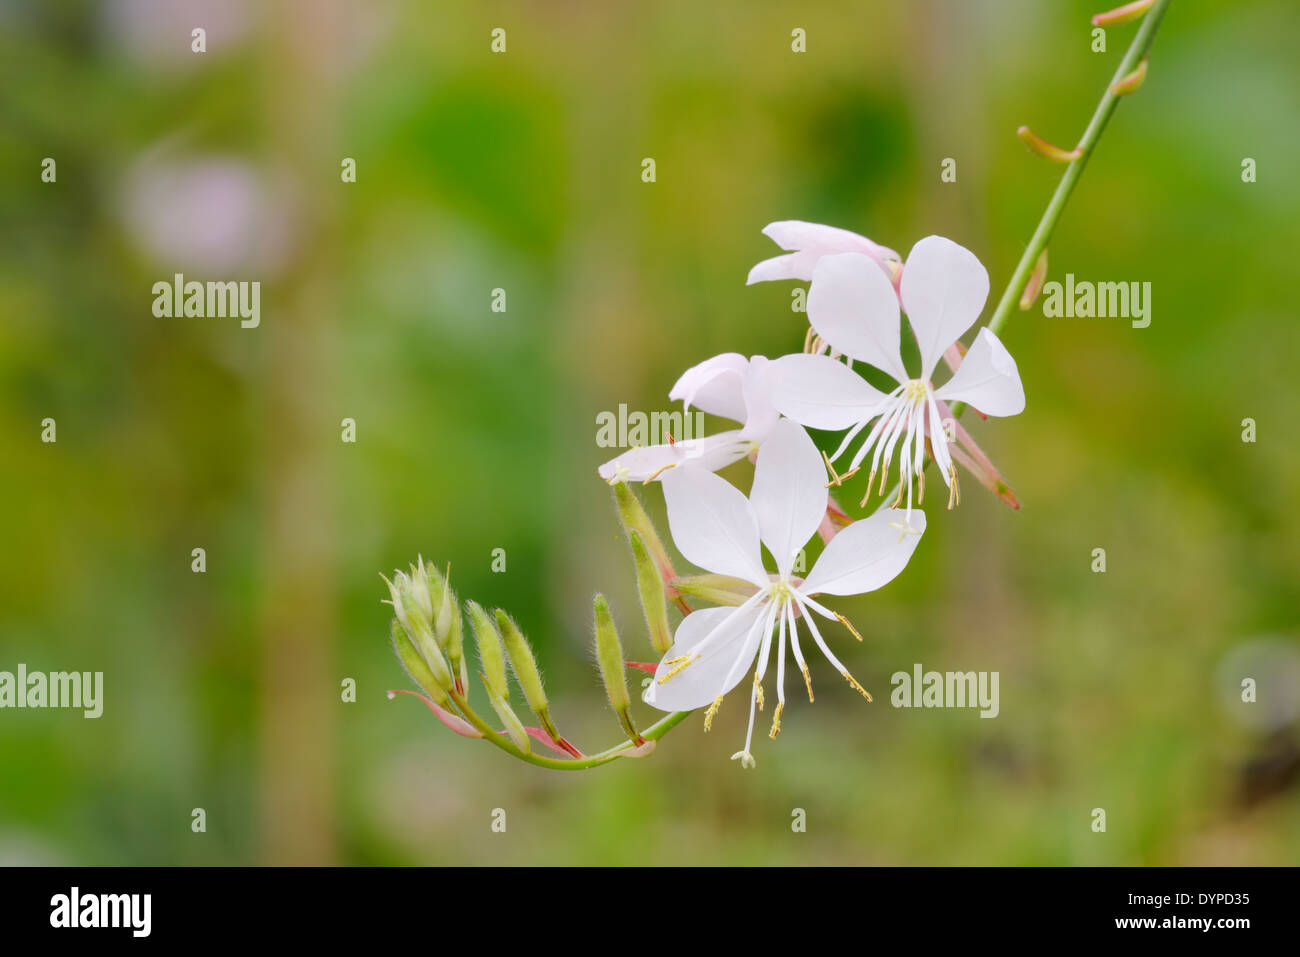 Gaura lindheimeri 'The Bride', Wales, UK. - Stock Image